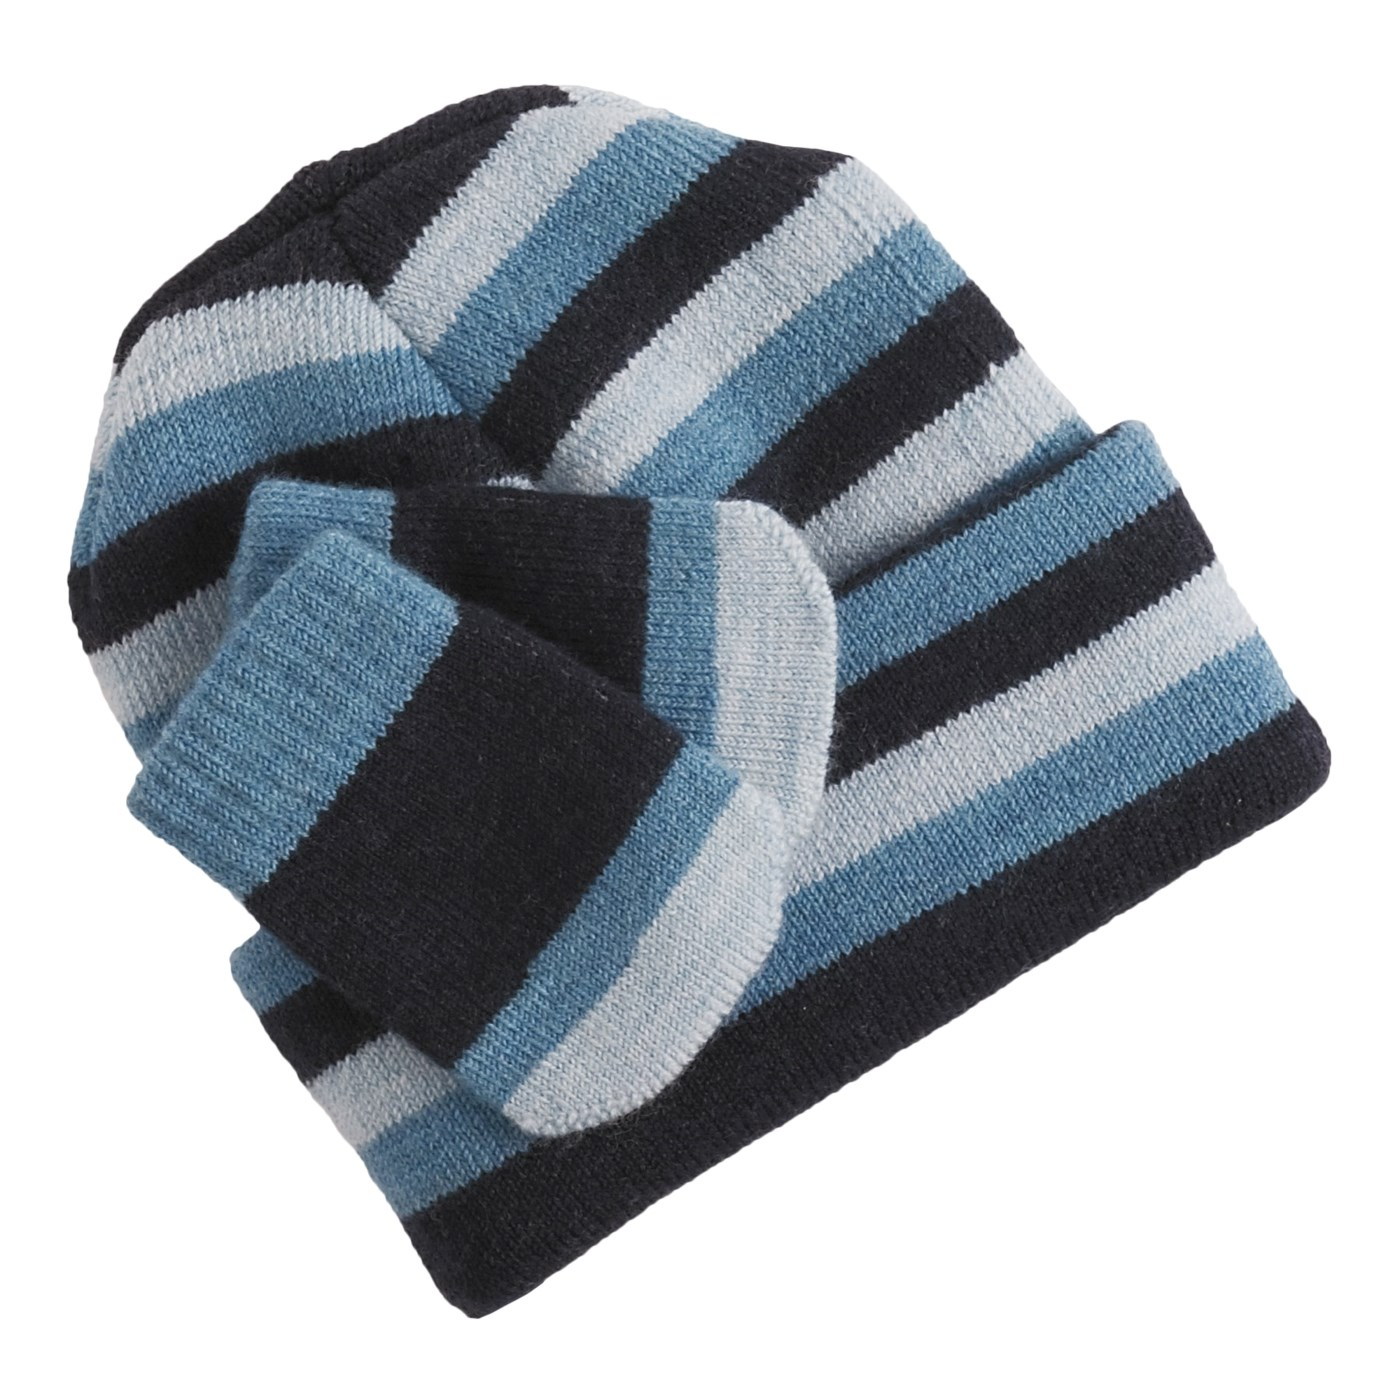 SmartWool Wintersport Striped Hat and Mitten Set Merino Wool (For on ... 23e1ef9a1a8f